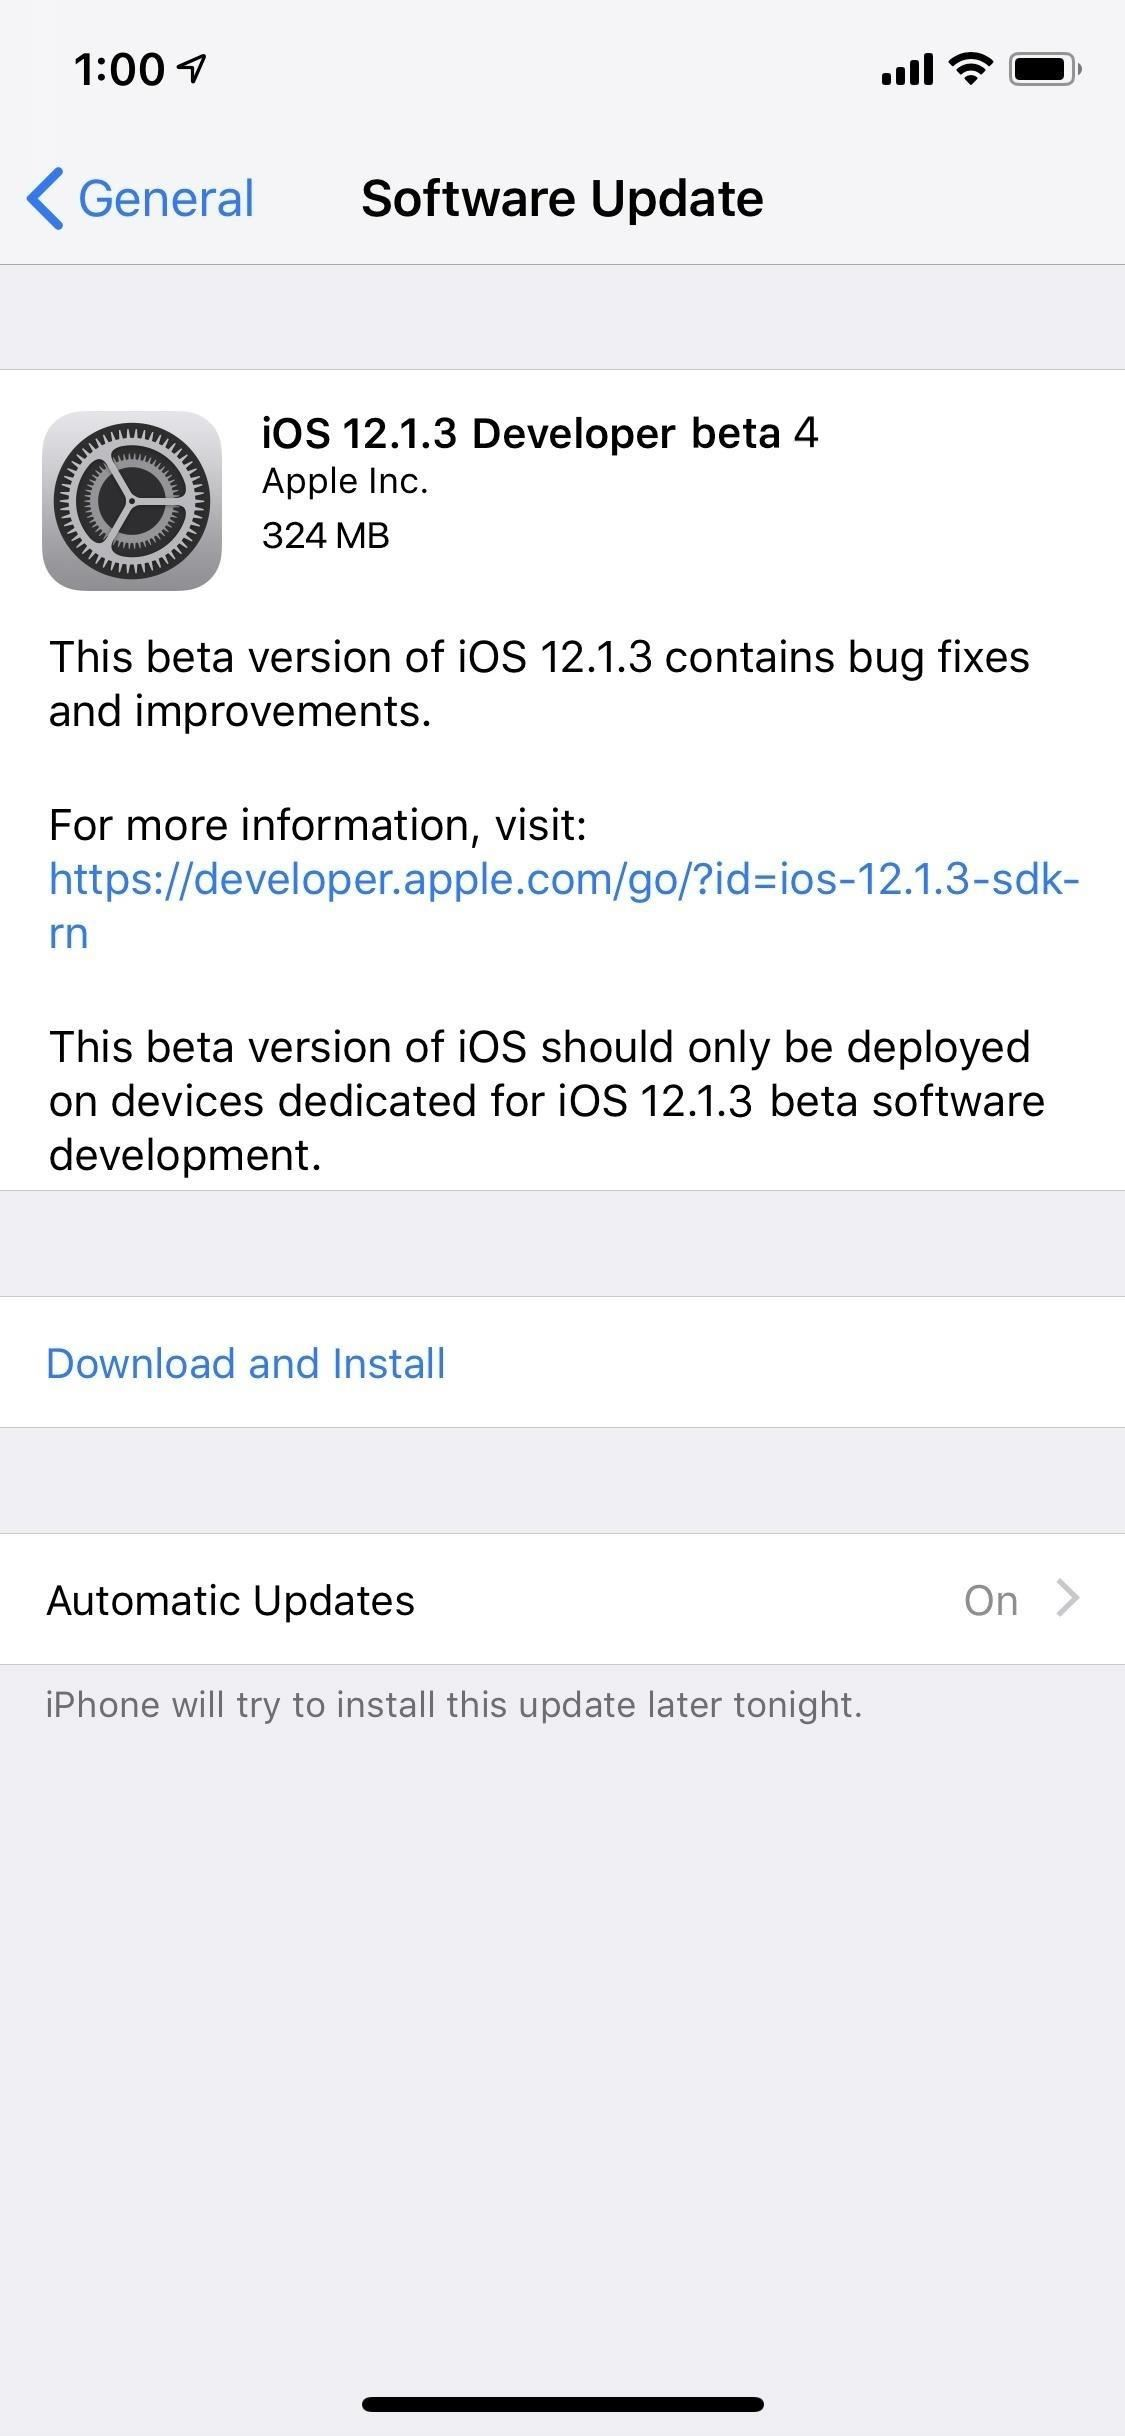 Apple's iOS 12.1.3 Developer Beta 4 Available for iPhones